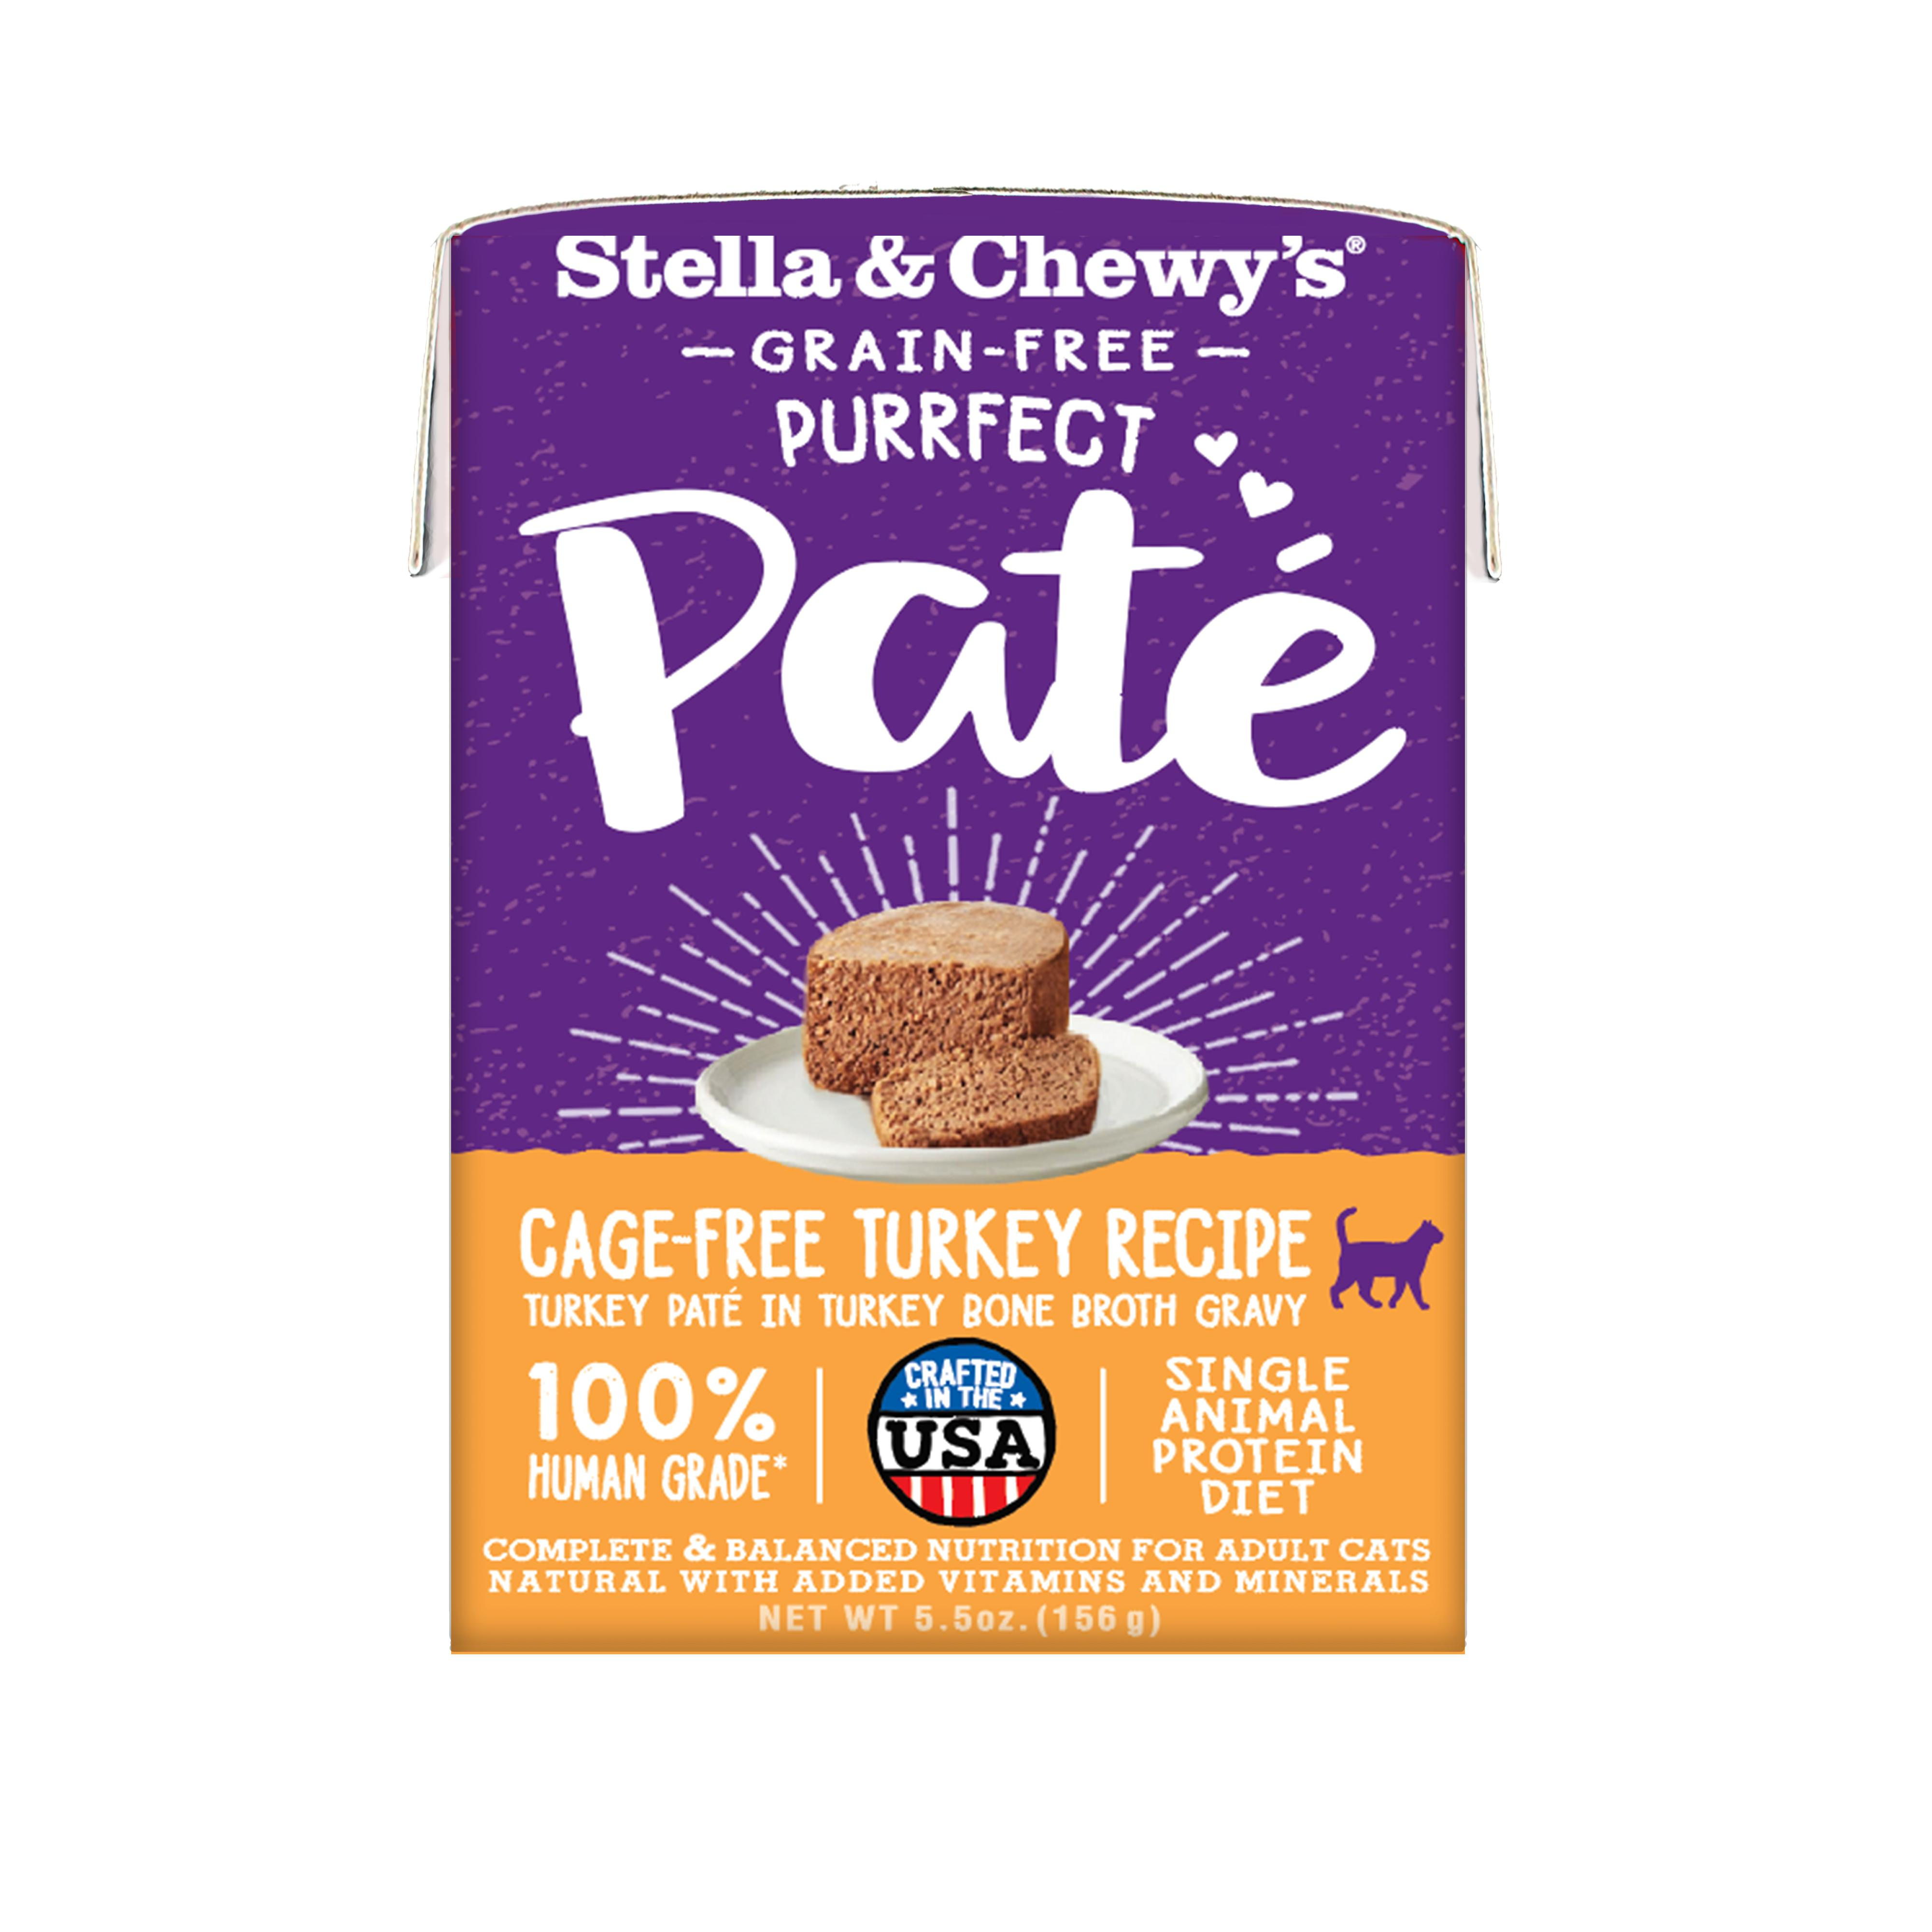 Stella & Chewy's Purrfect Paté Cage-Free Turkey Recipe Wet Cat Food, 5.5-oz (Size: 5.5-oz) Image